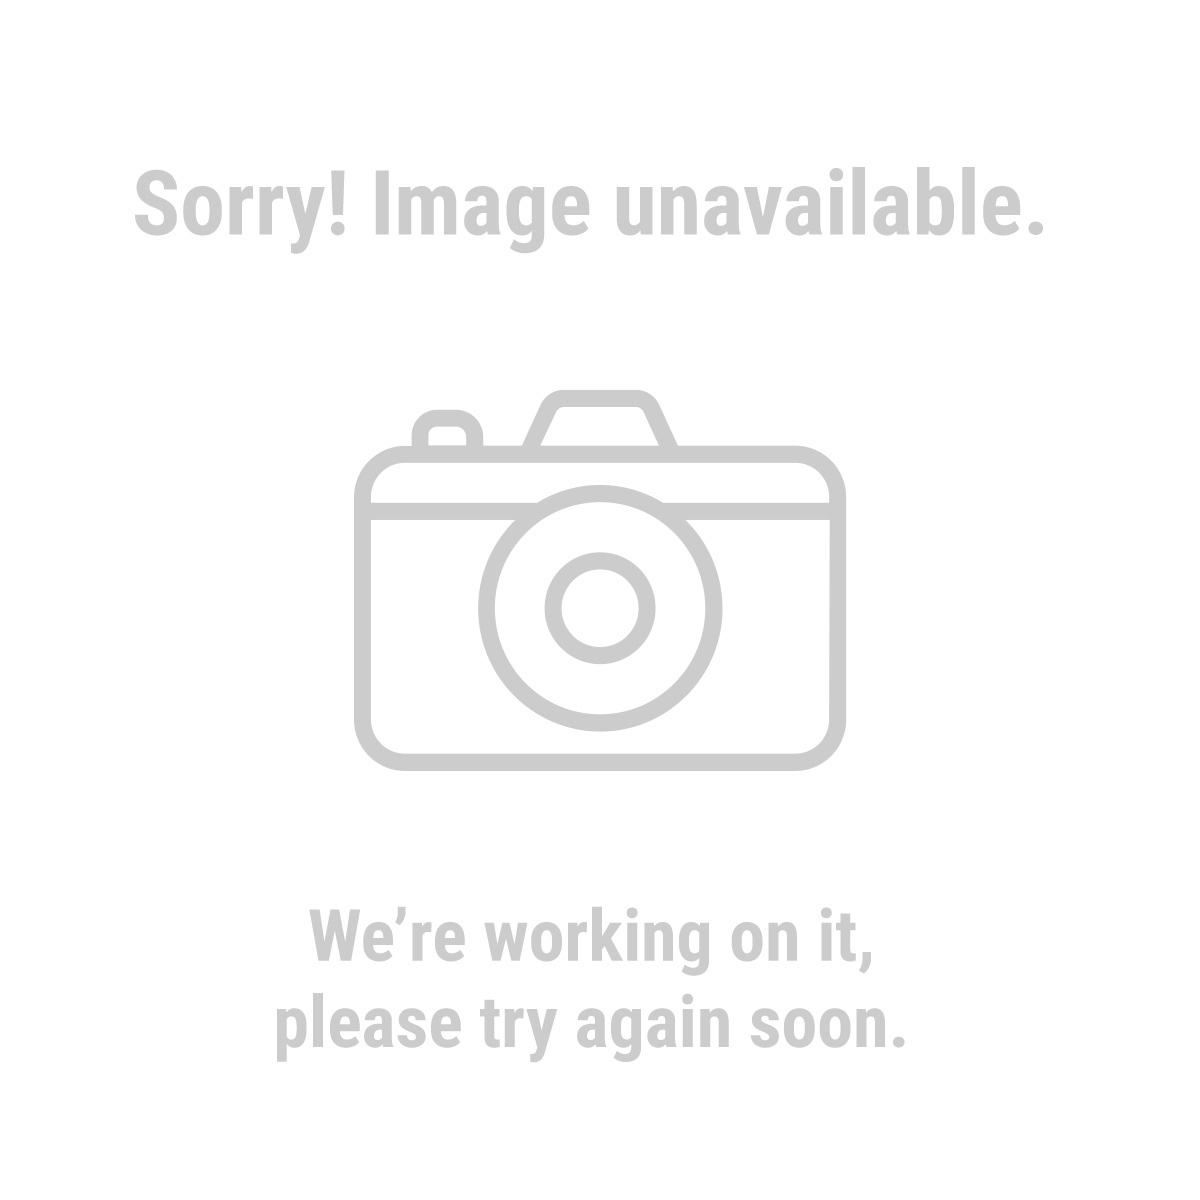 Pittsburgh 92374 11 Piece Snap Ring Pliers Set